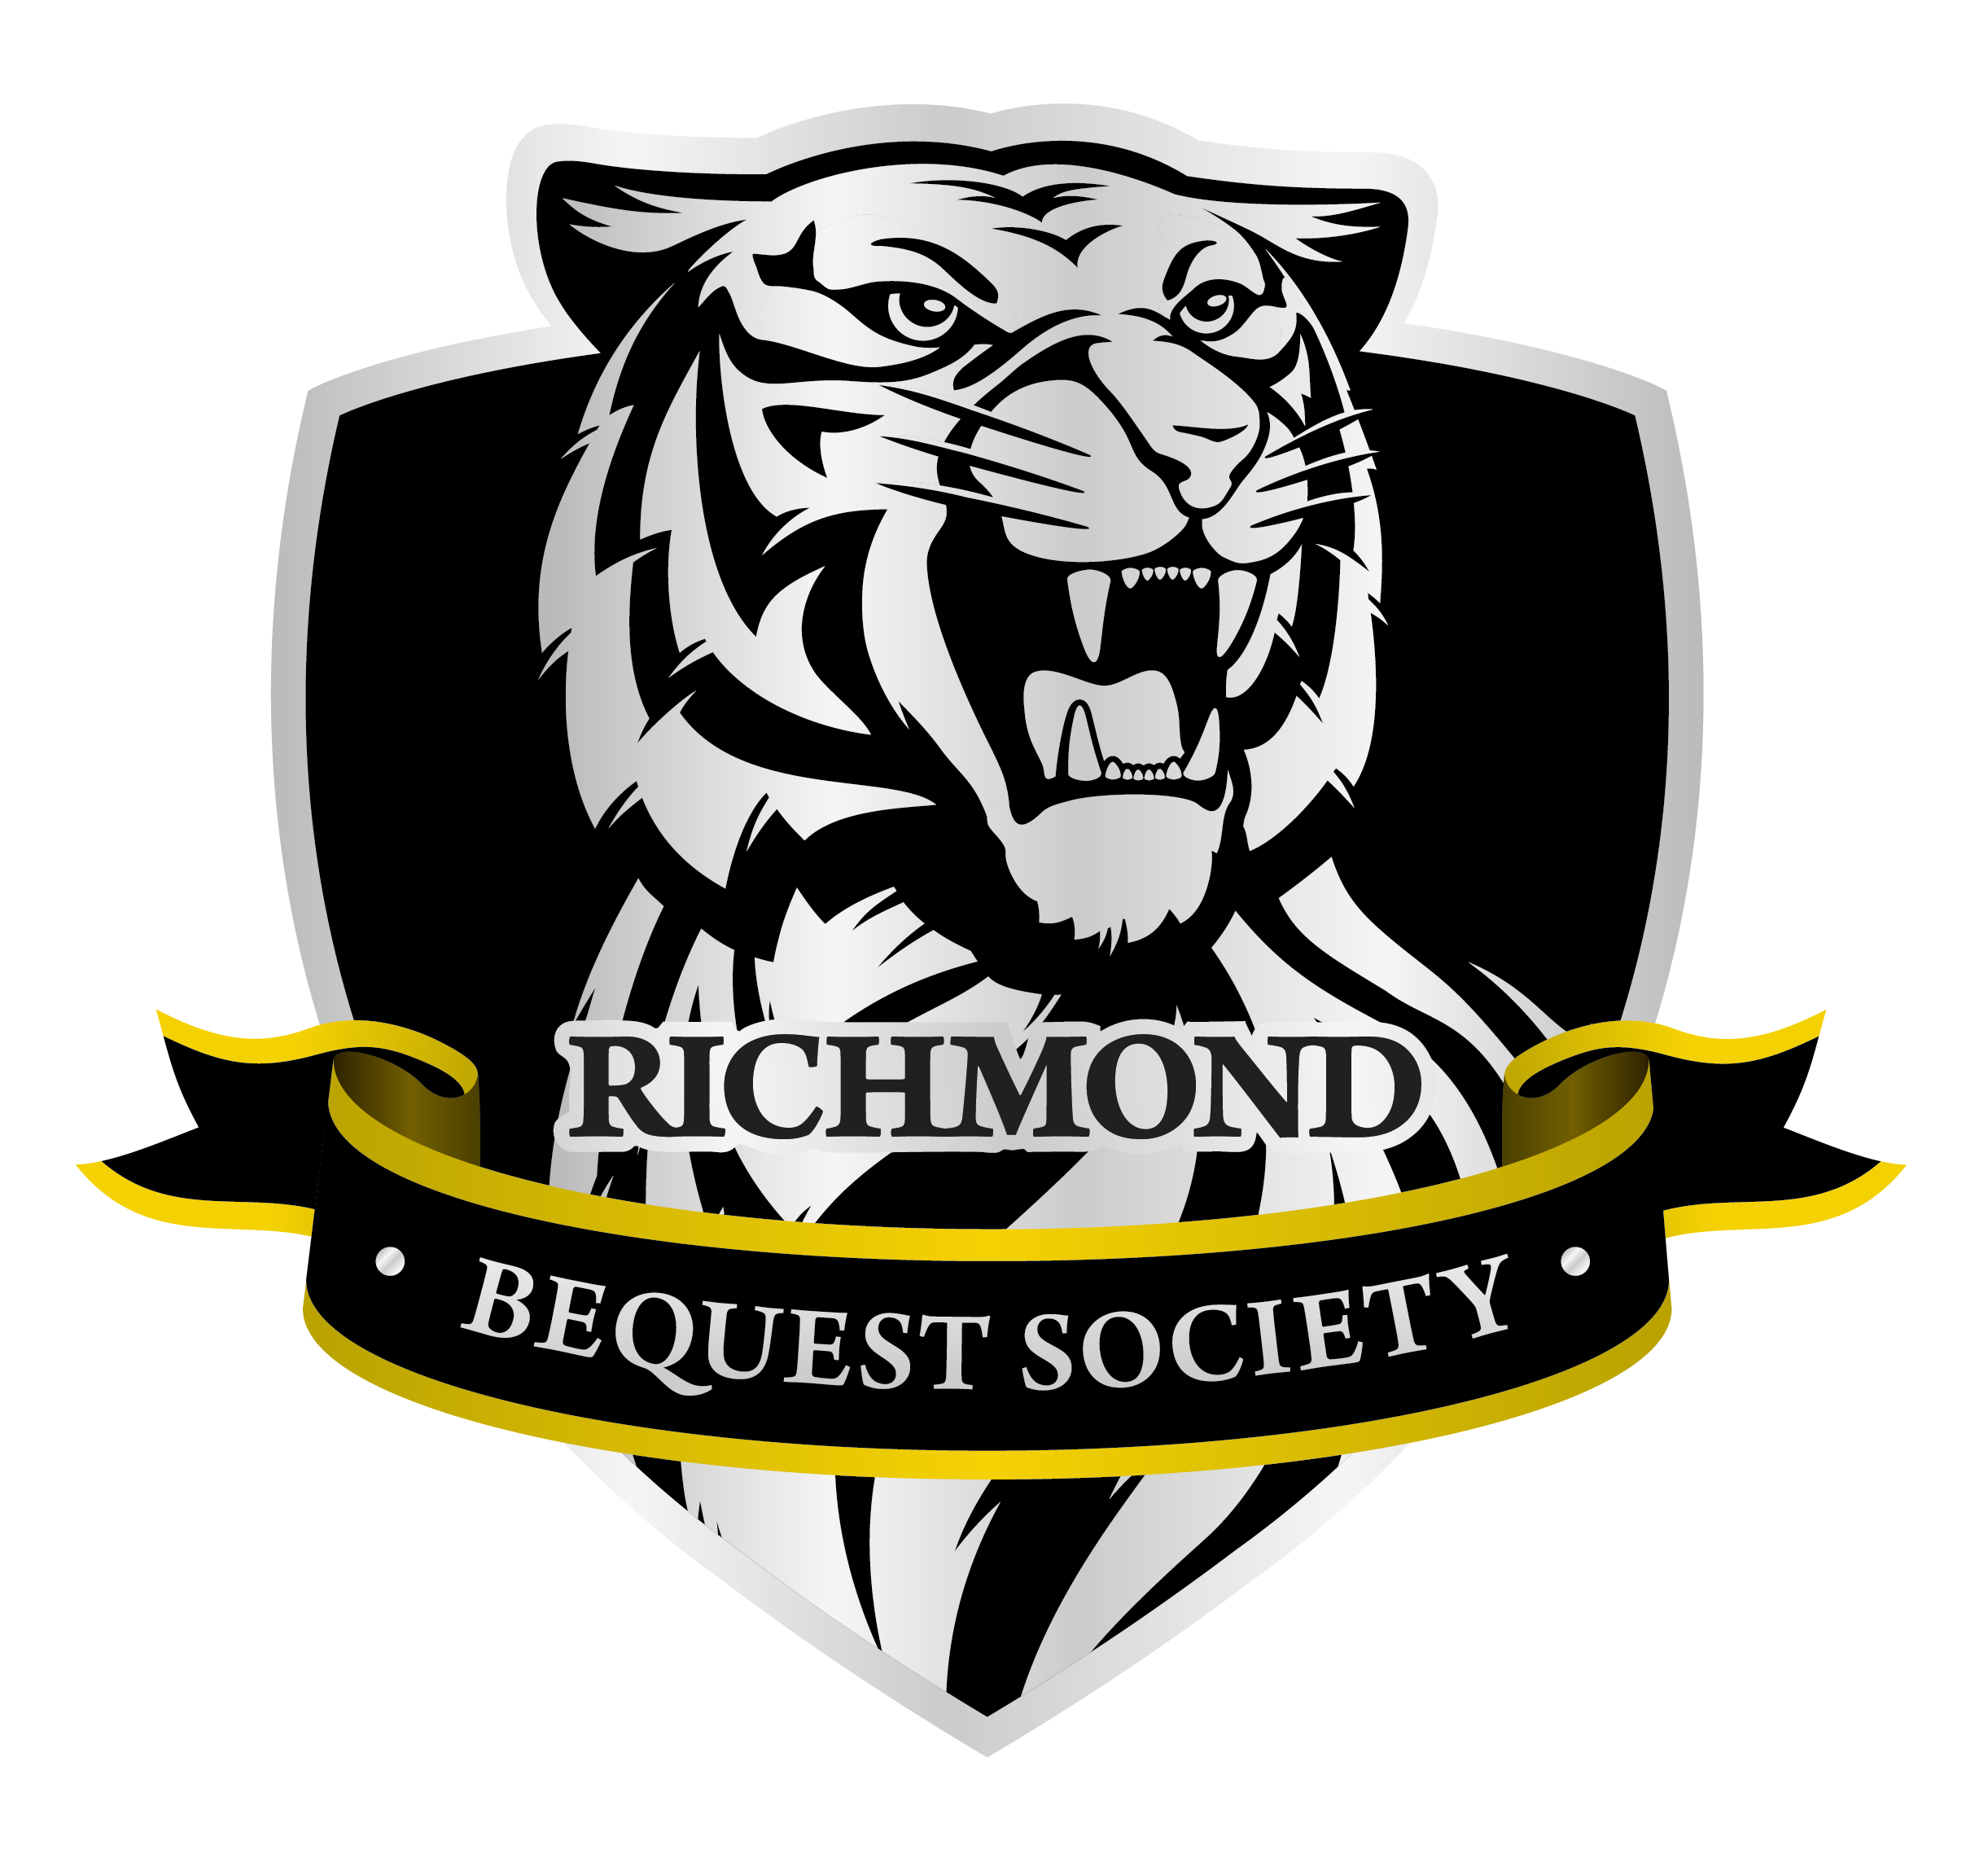 Richmond Bequest Society - richmondfc com au